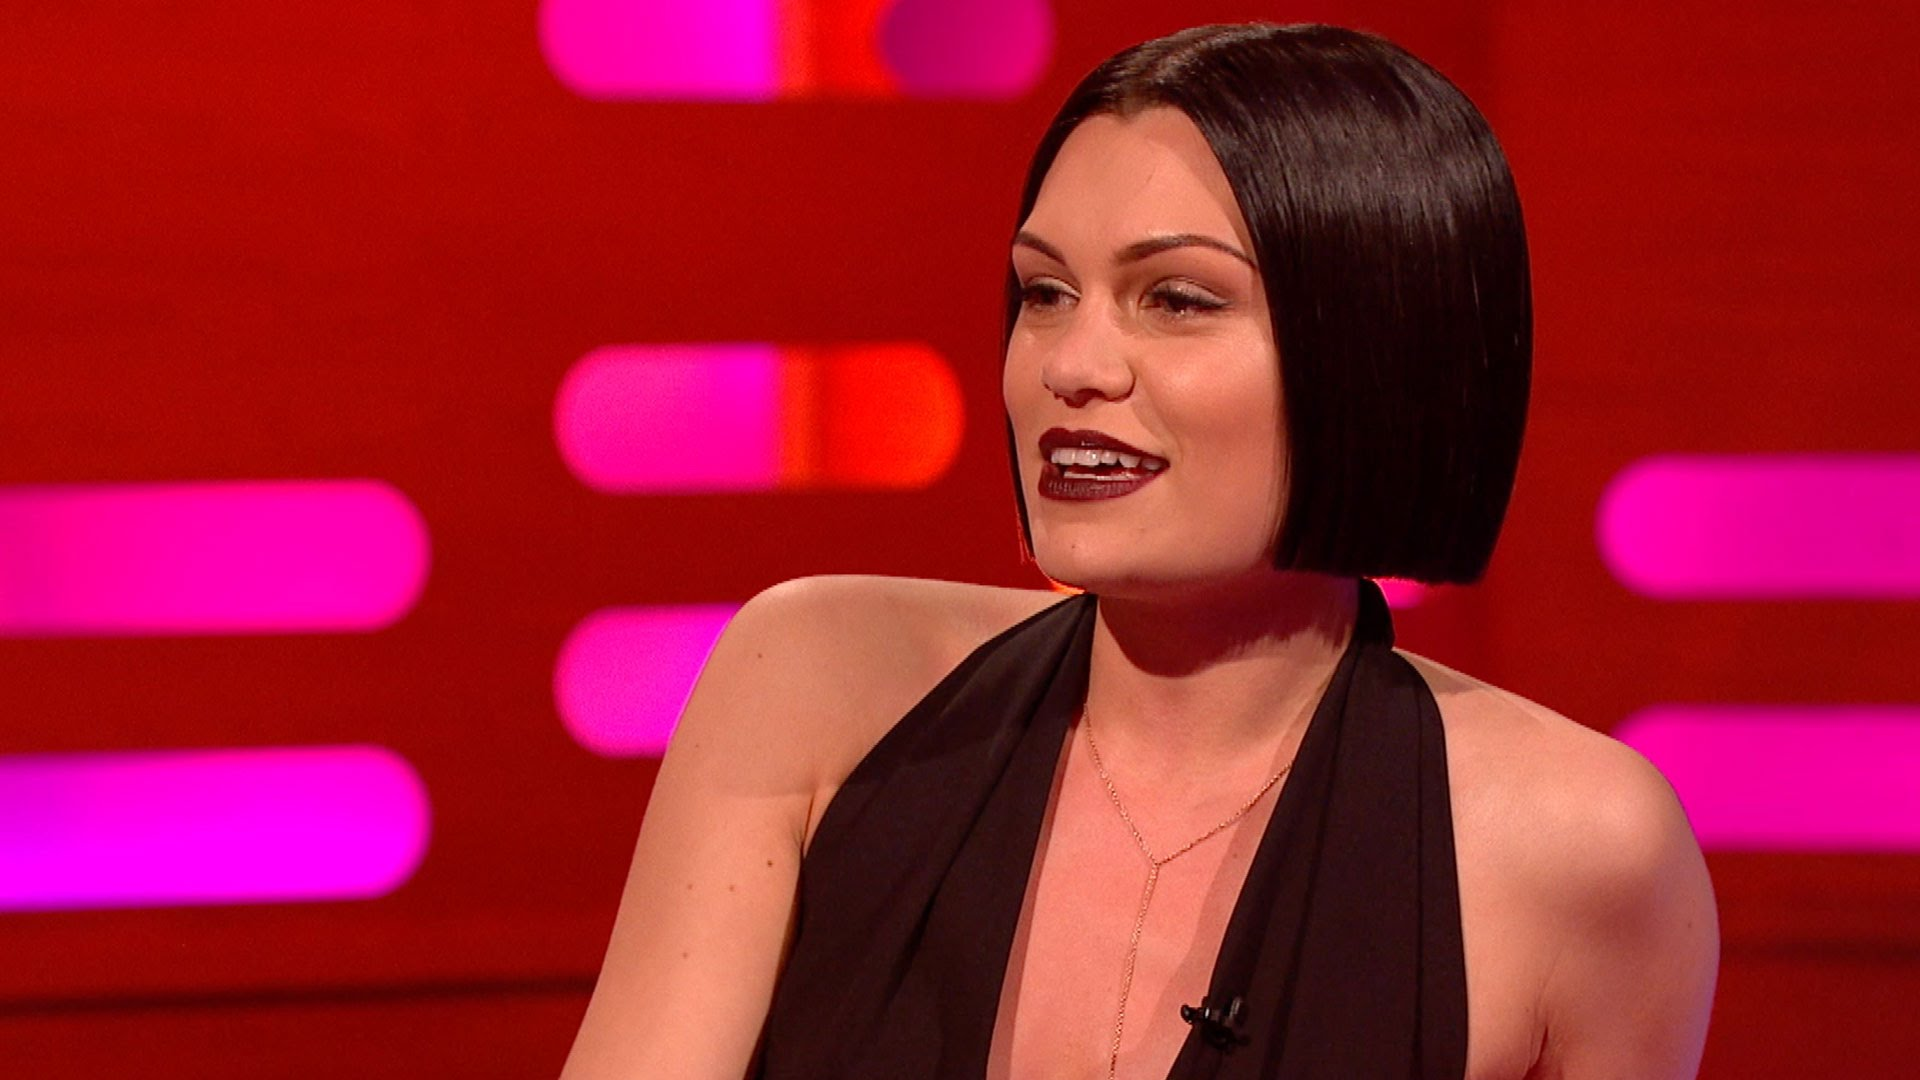 Jessie J is awesome even with her mouth shut!!!